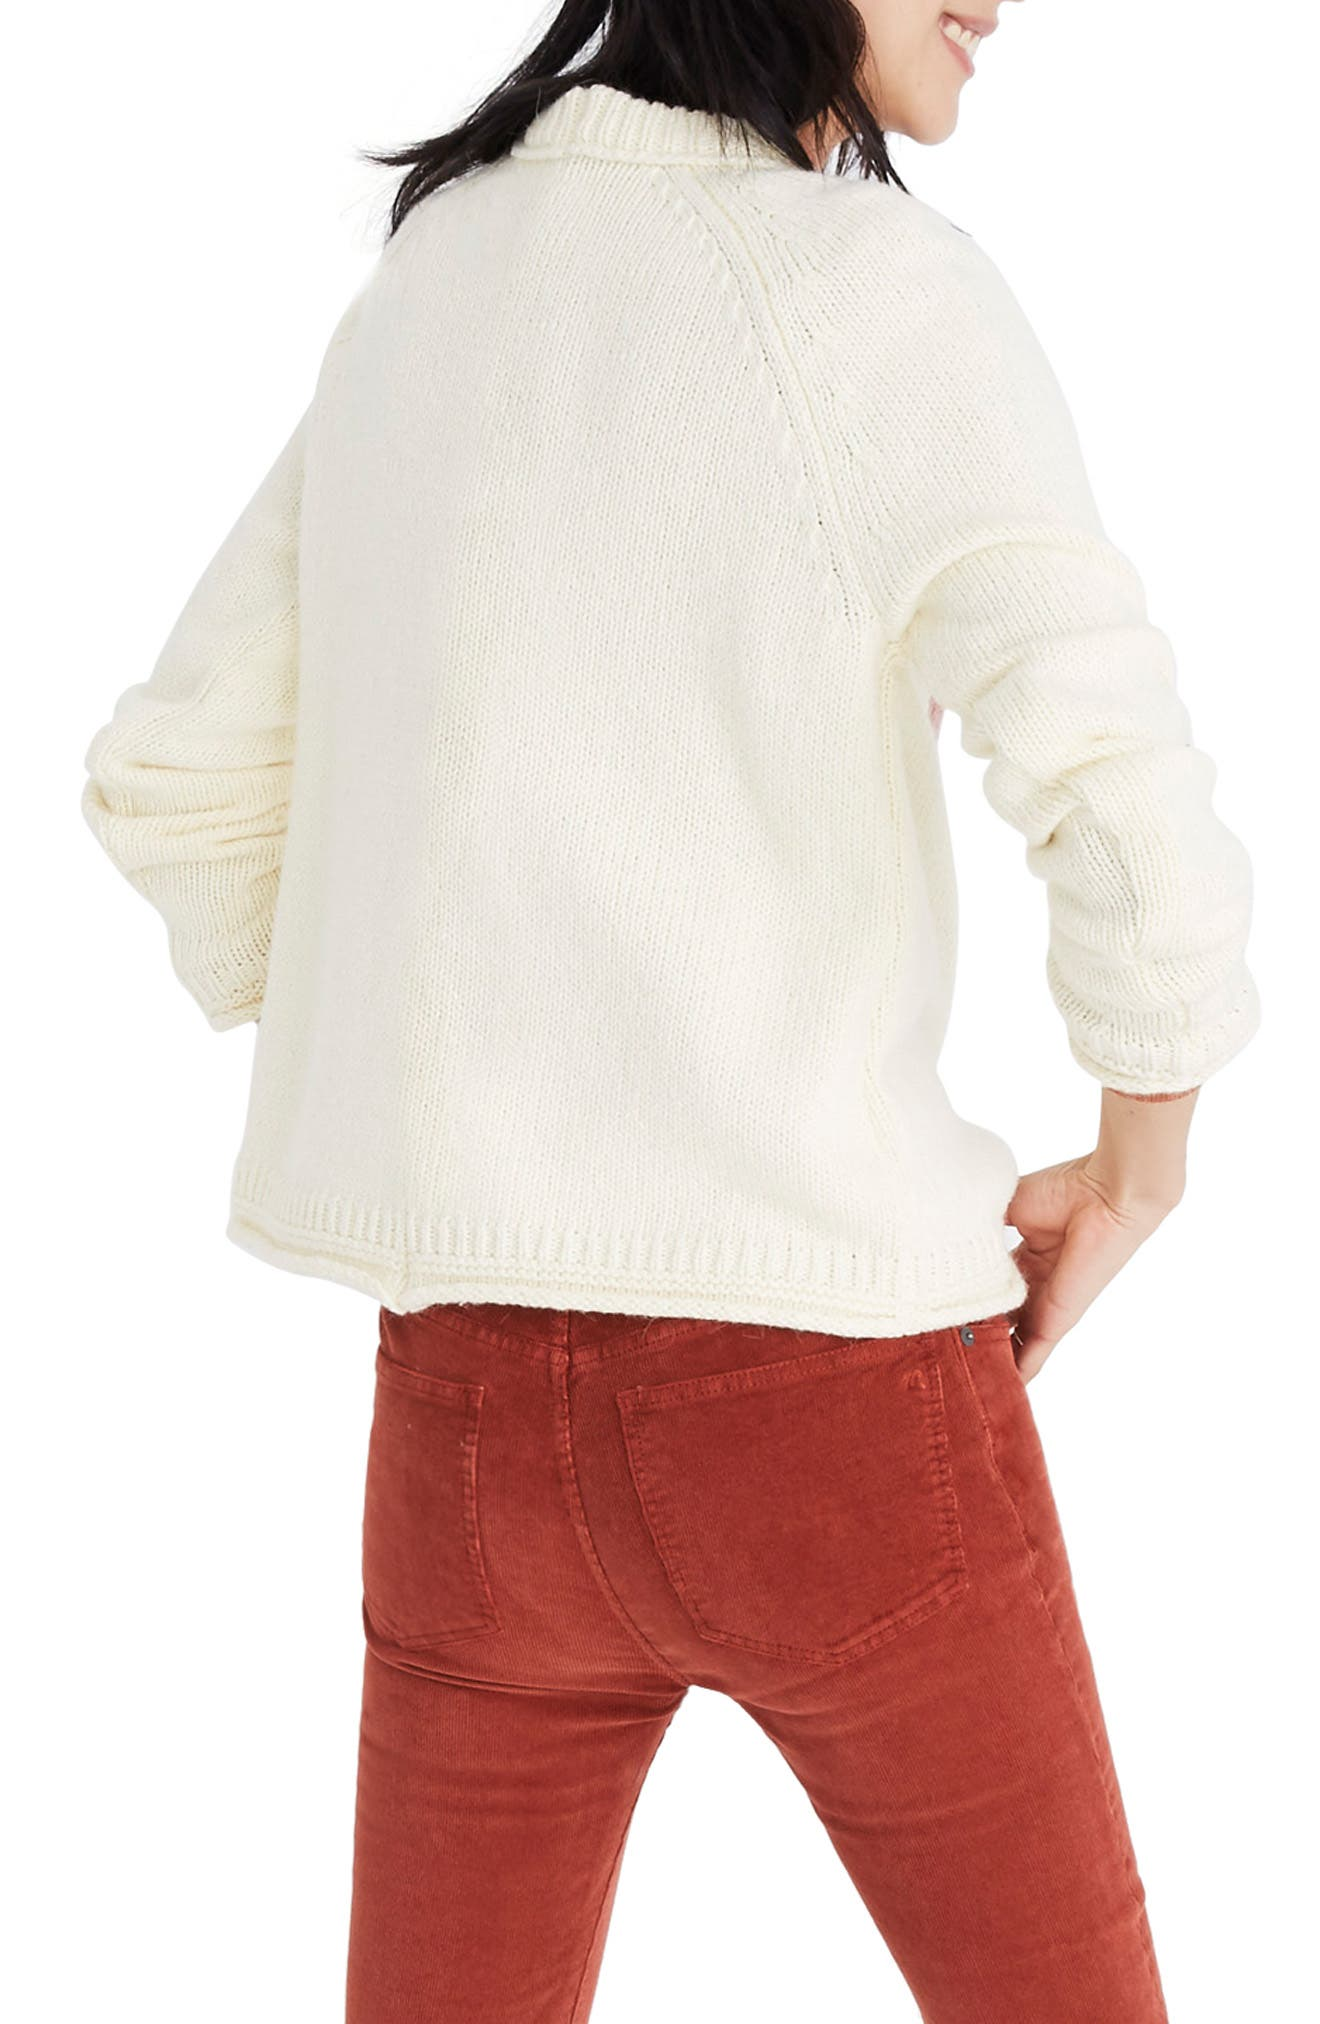 MADEWELL,                             Keaton Heart Pullover Sweater,                             Alternate thumbnail 2, color,                             100